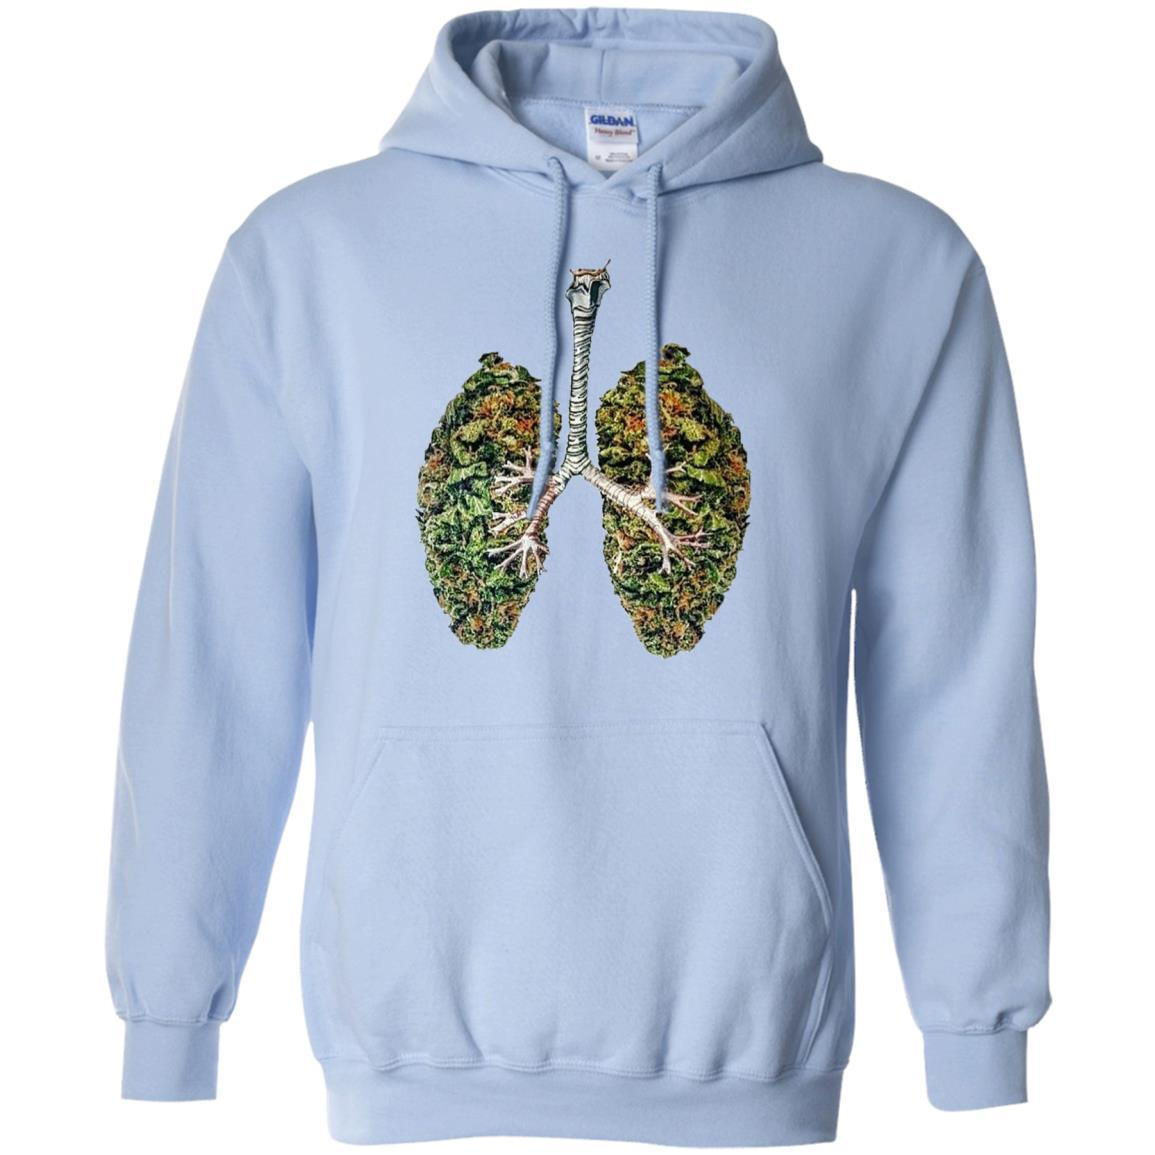 My Weed Lungs - Pullover Hoodie Light Blue / 5XL